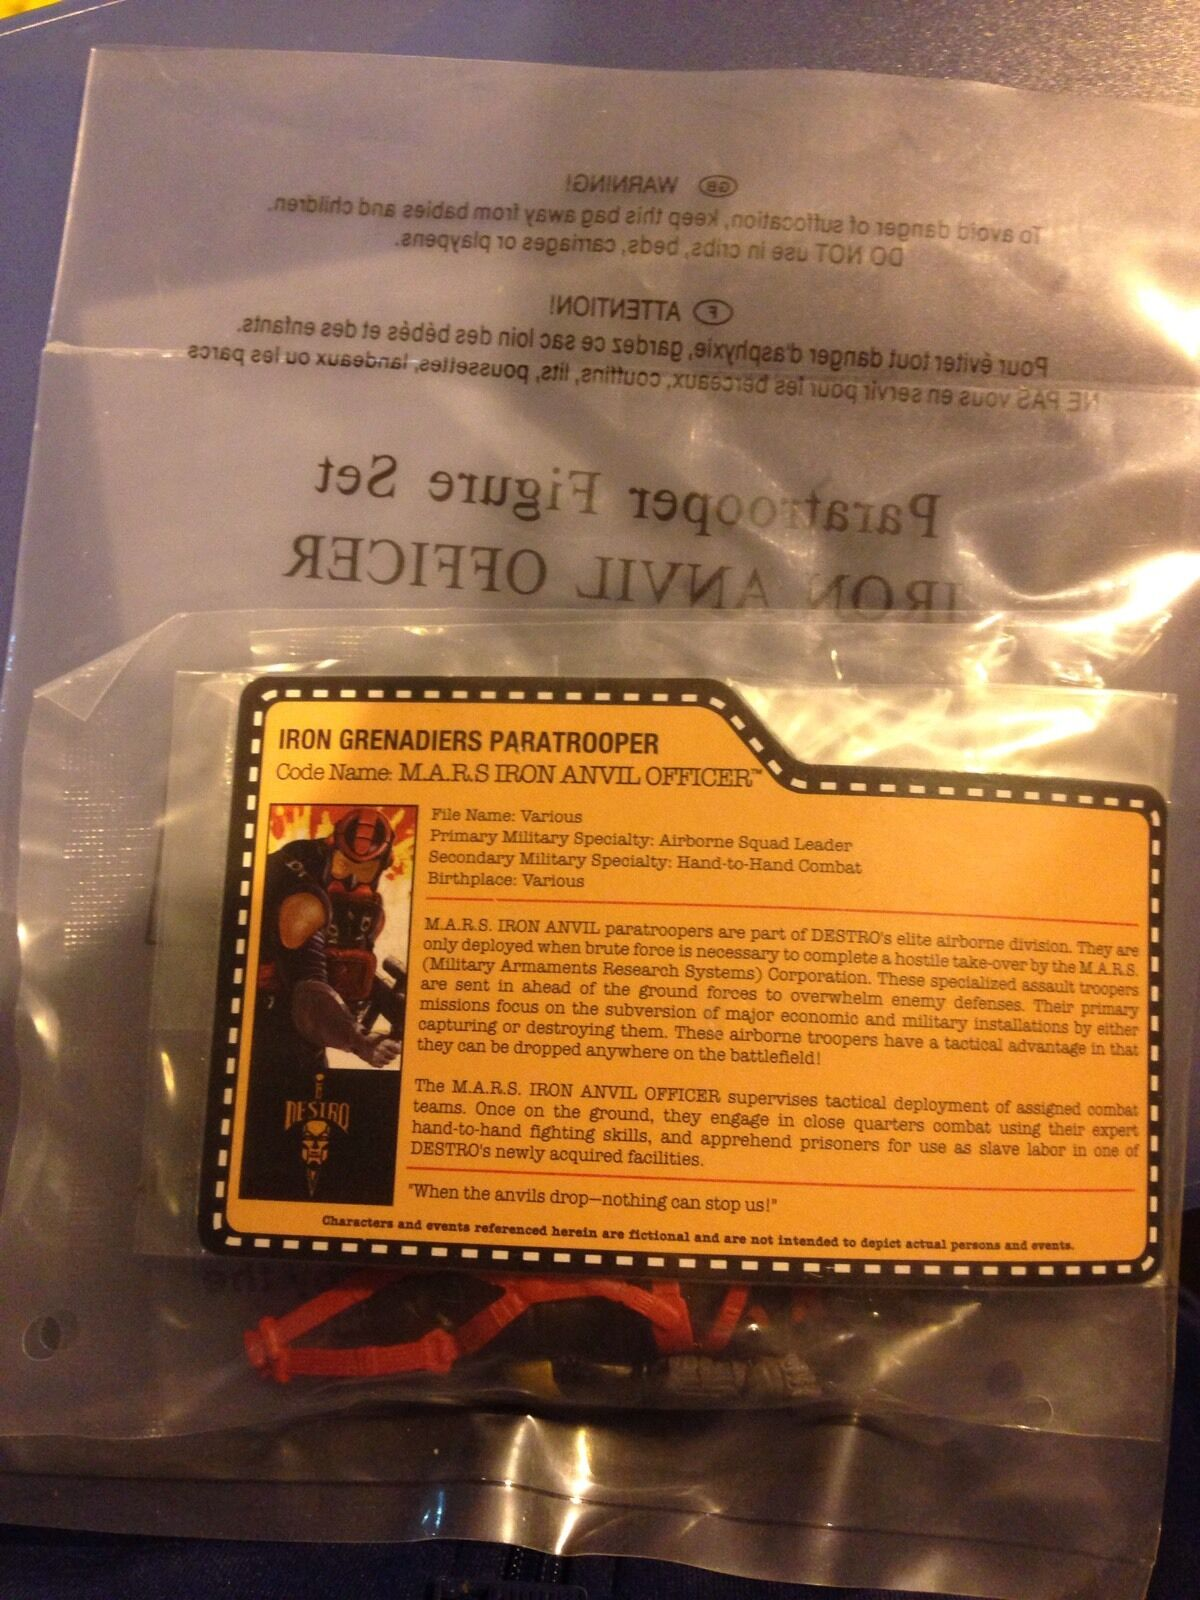 2015 GI Joe Joecon Iron Anvil Officer Paratrooper Attendee Parachute Drop Figure